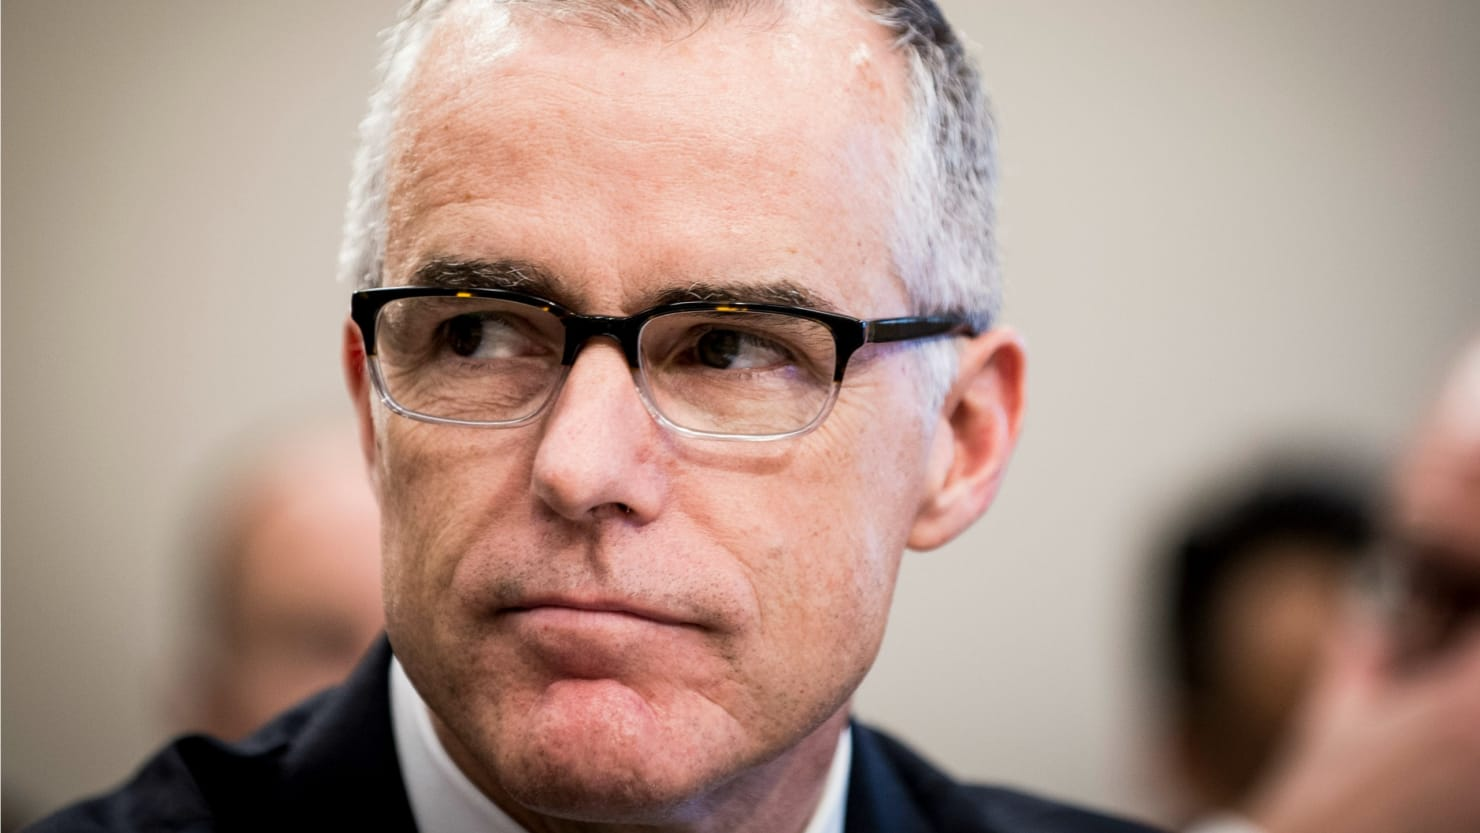 thedailybeast.com - Ex-FBI Official Andrew McCabe to Publish Tell-All